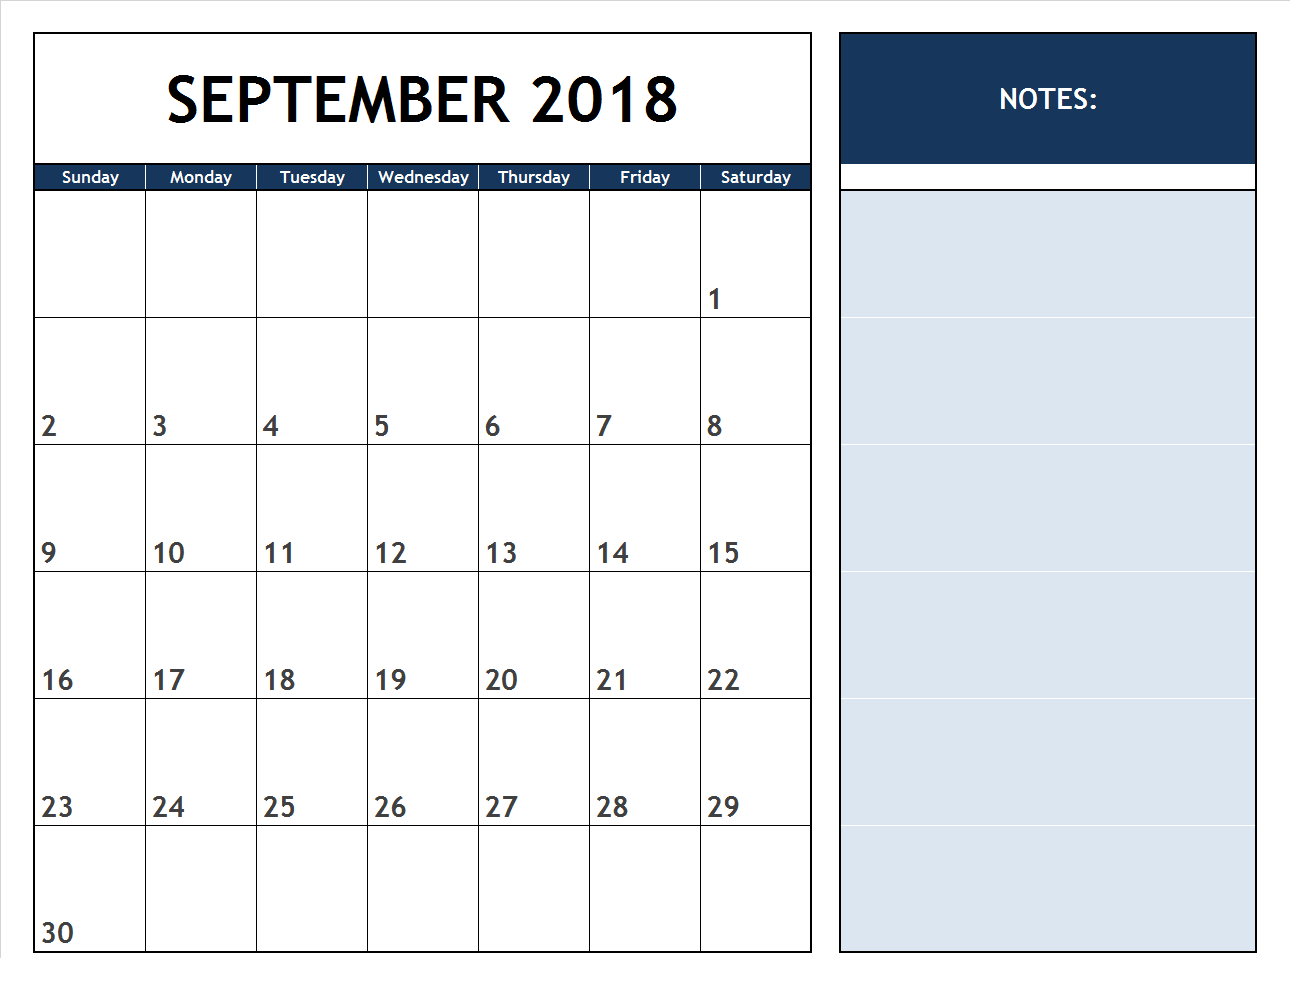 September 2018 Calendar with Notes